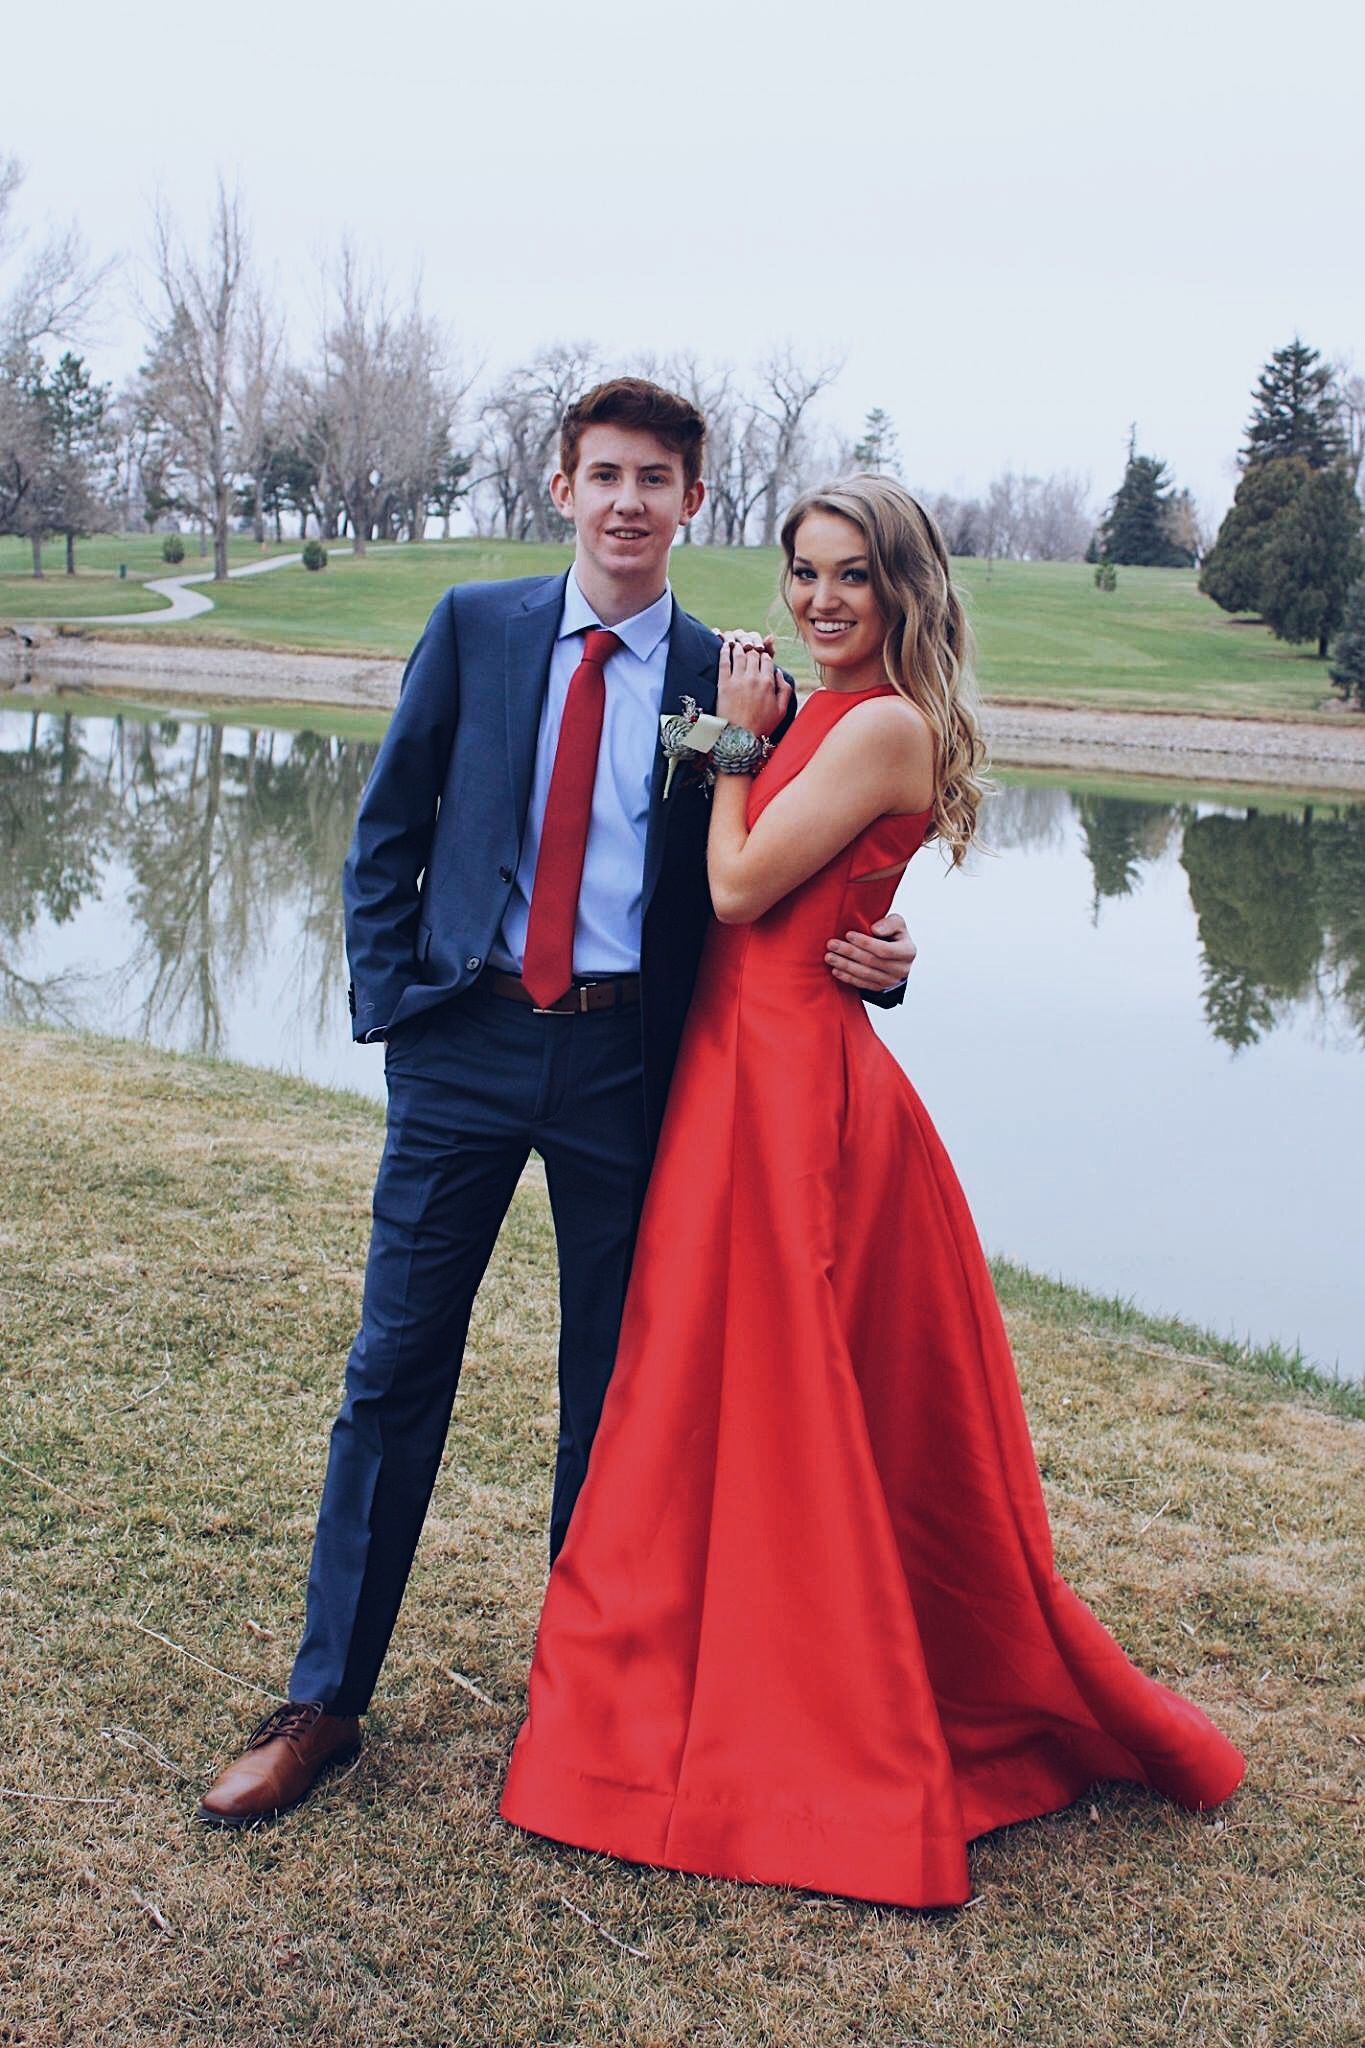 Prom Poses Prom Pictures Date Red Dress Navy Suit Succulent Prom Poses Prom Photoshoot Prom Picture Poses [ 2048 x 1365 Pixel ]